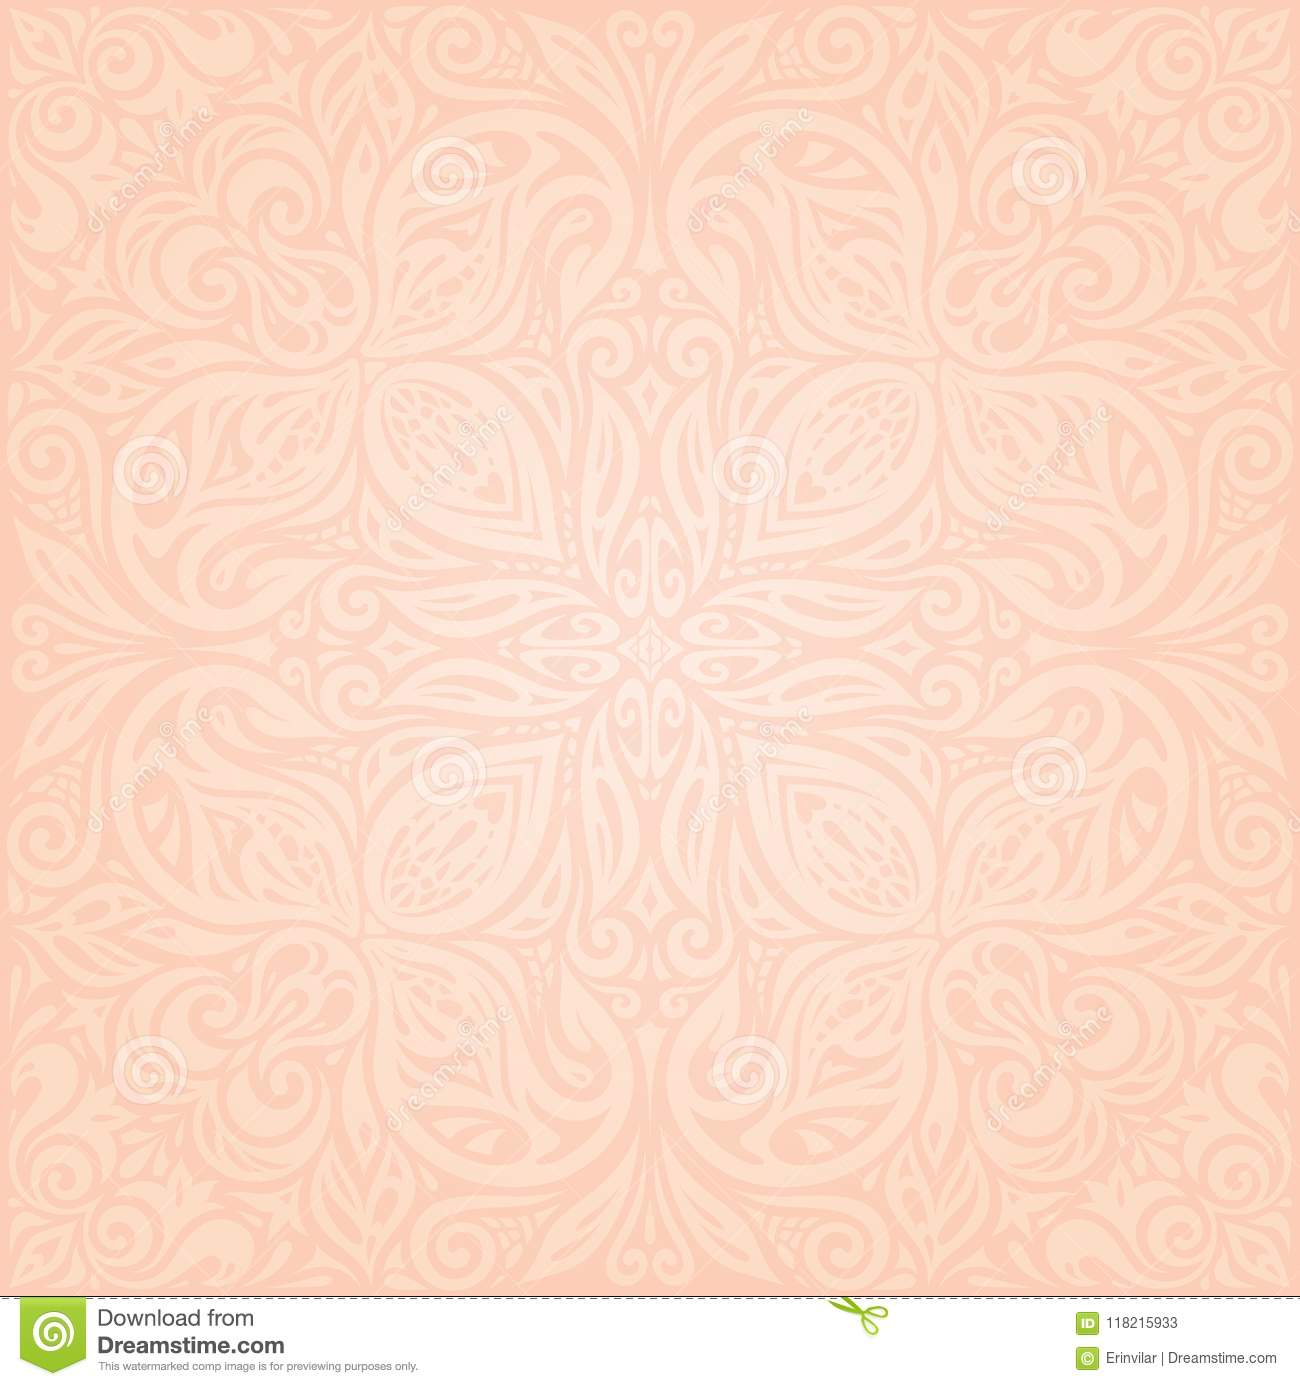 Floral Pale Ecru Vector Pattern Wallpaper Mandala Design In Trendy Fashion Vintage Style